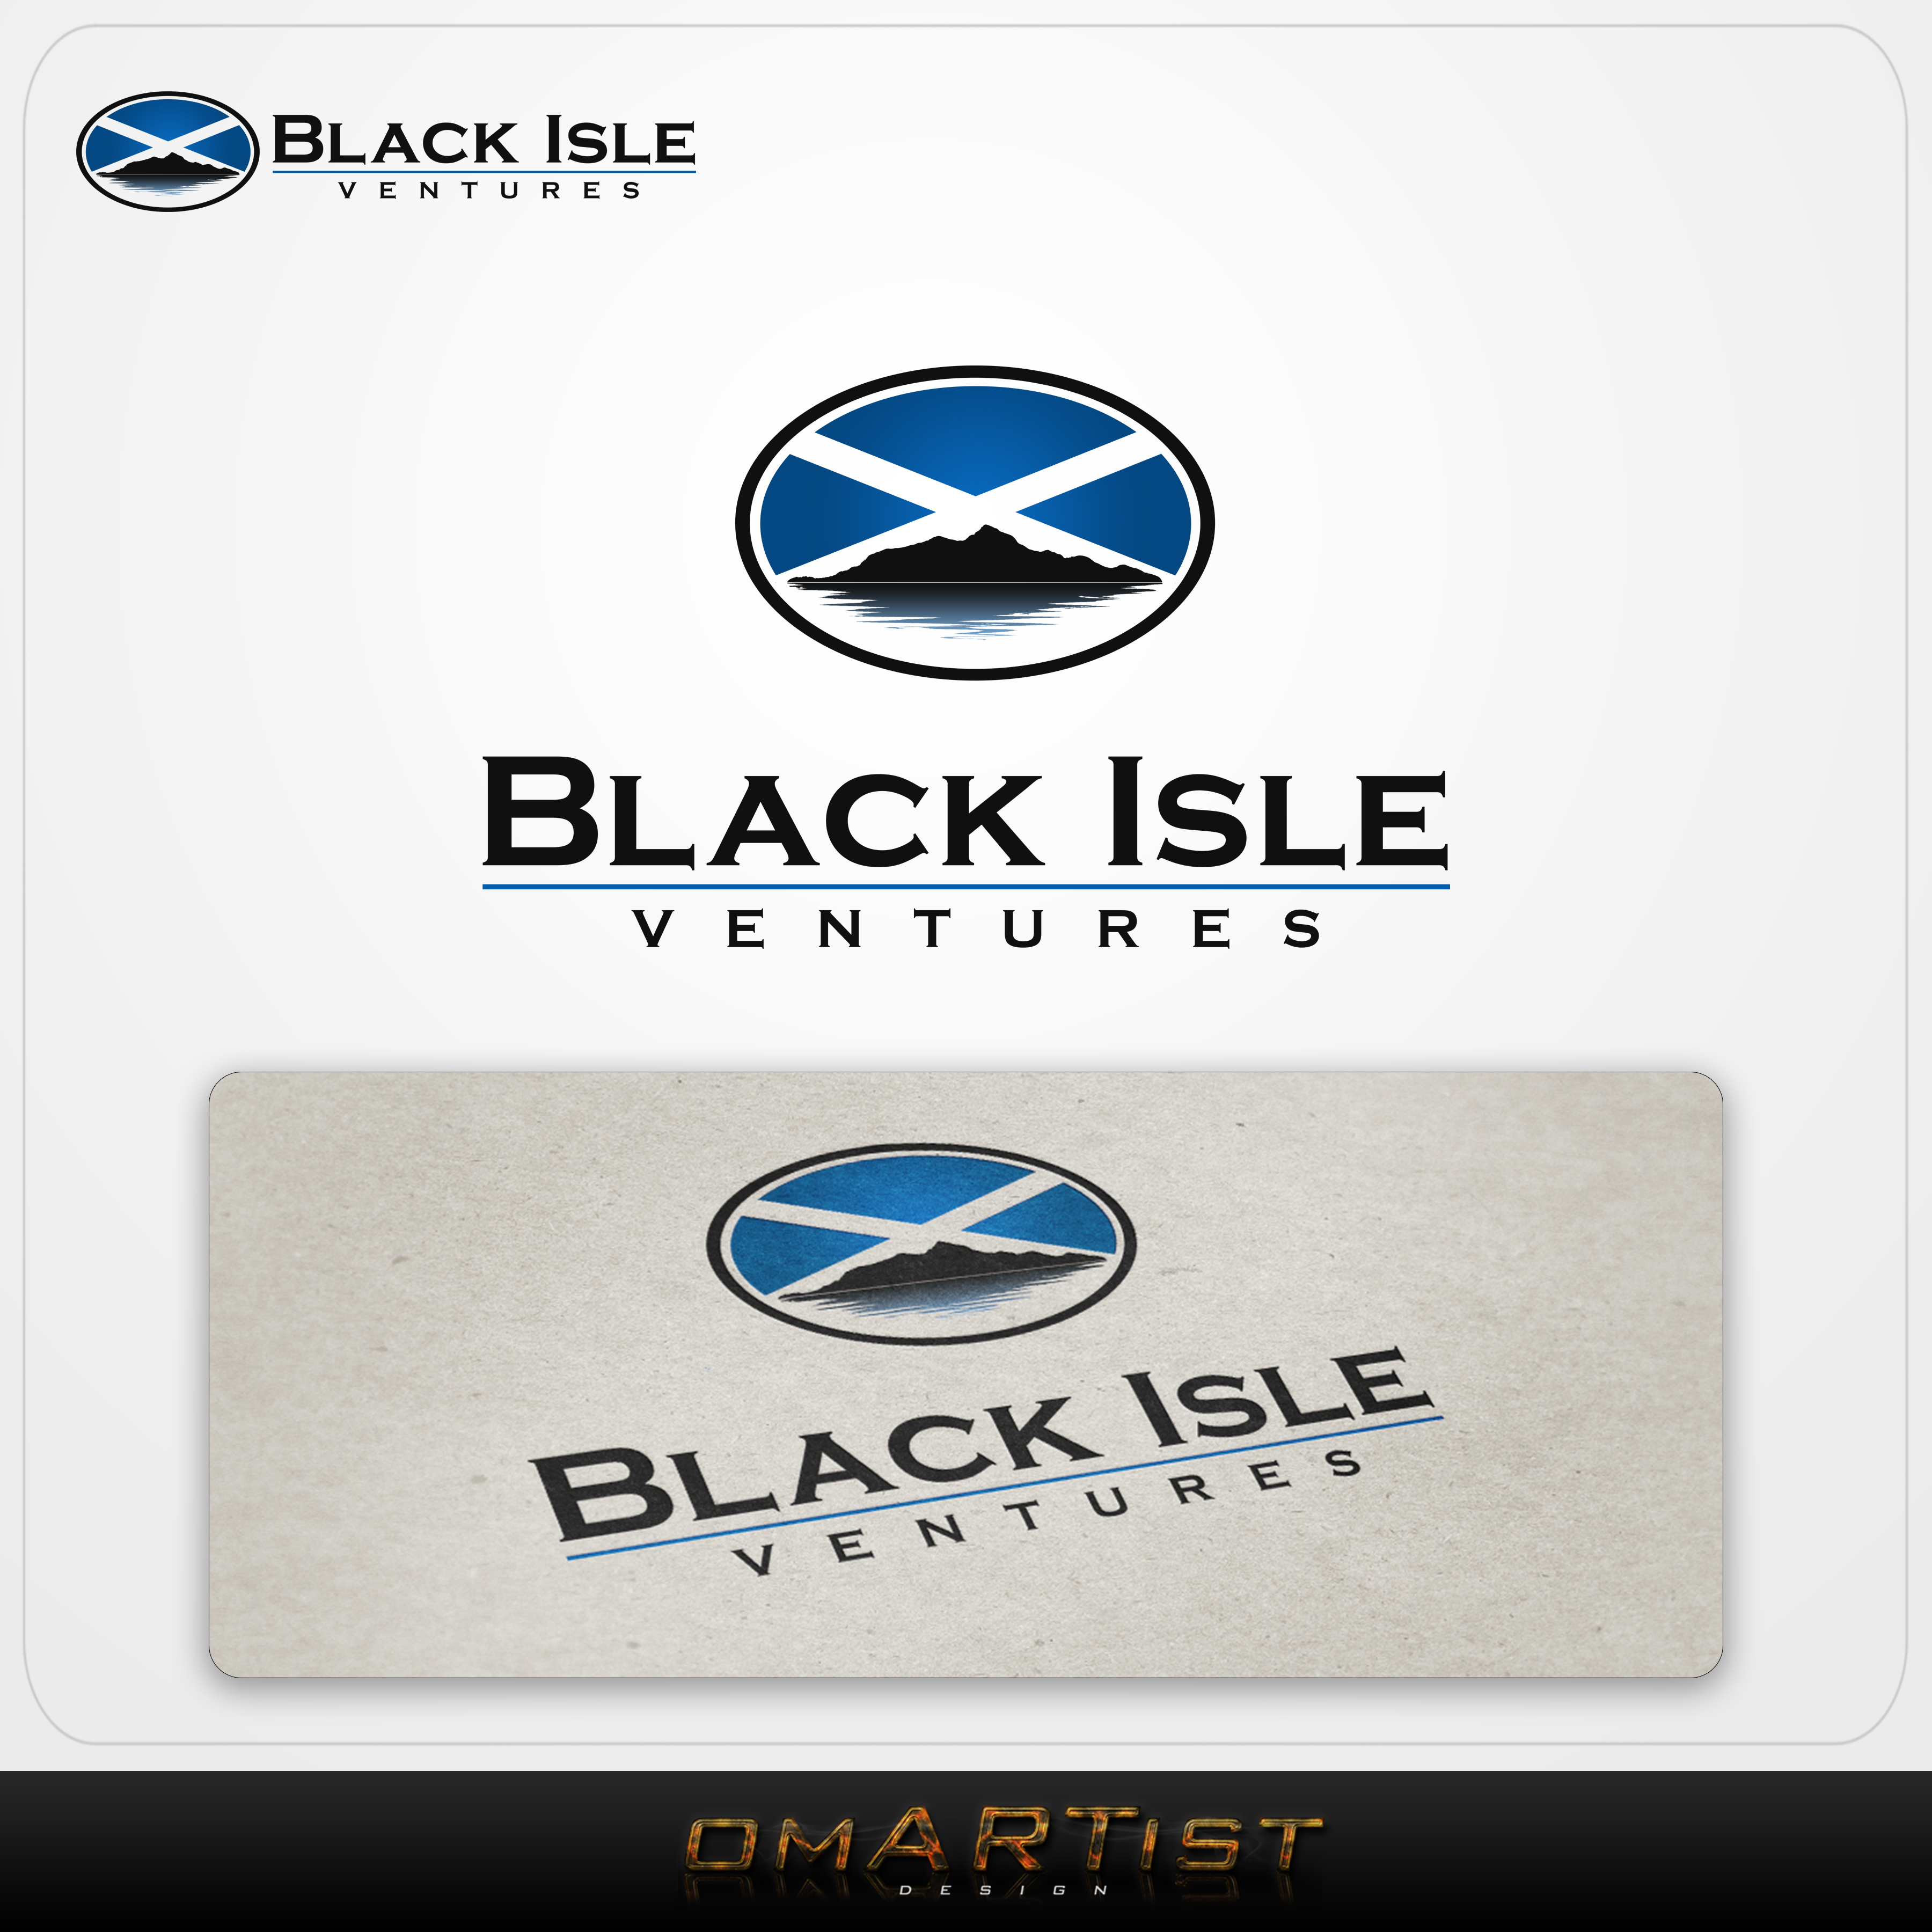 Logo Design by omARTist - Entry No. 120 in the Logo Design Contest Creative Logo Design for Black Isle Ventures.